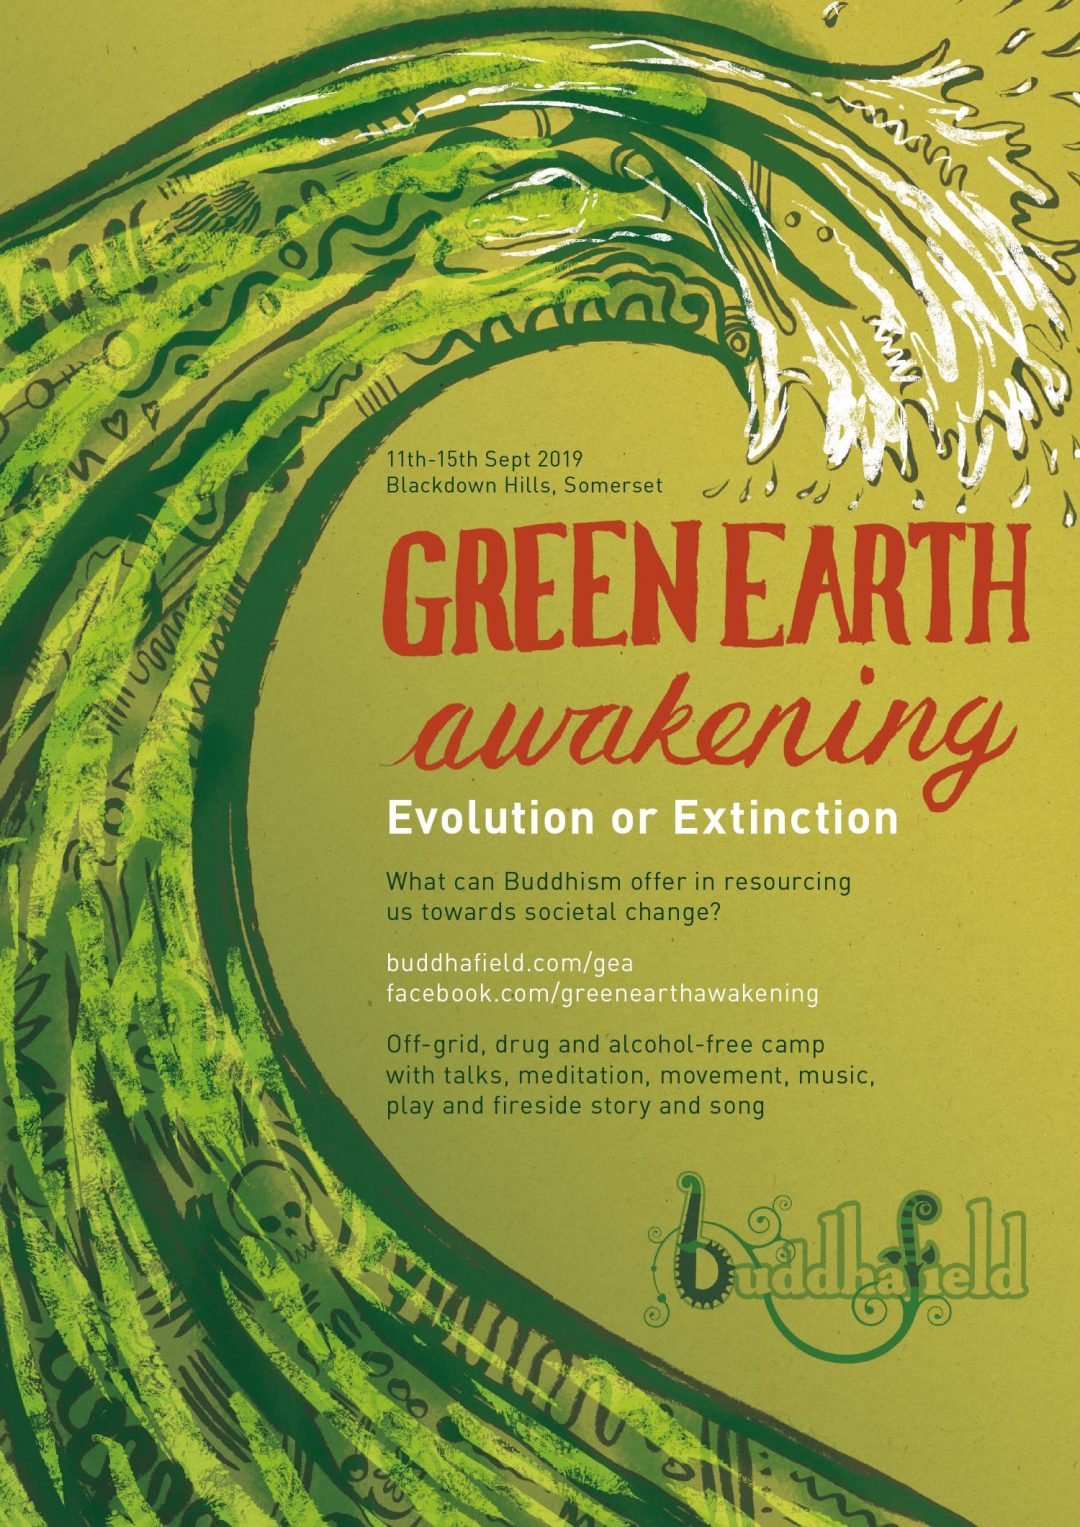 poster art, design, illustration for green earth awakening. A green wave breaking. Illustrator South Wales Cardiff Frank Duffy